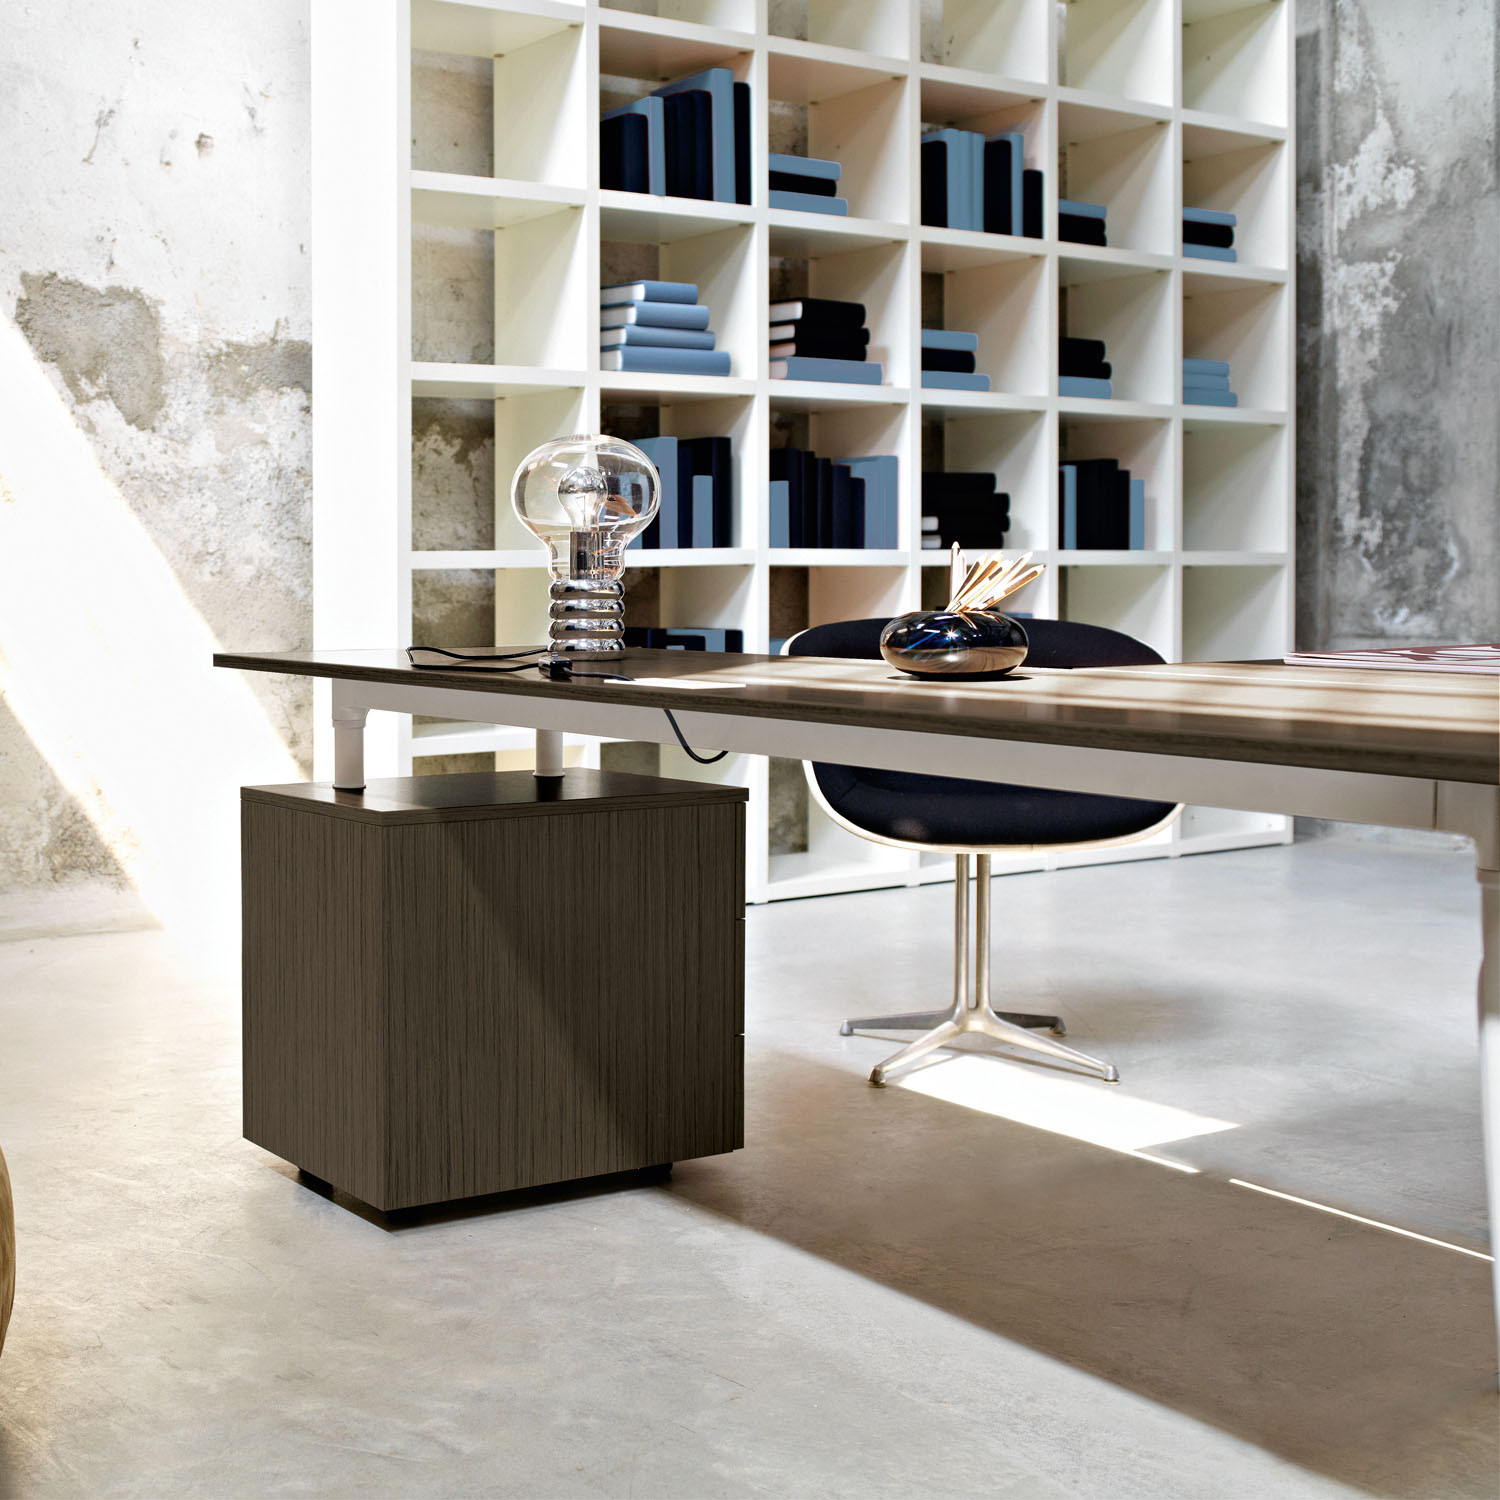 Glamour Executive Desk Pedestal by Sinetica